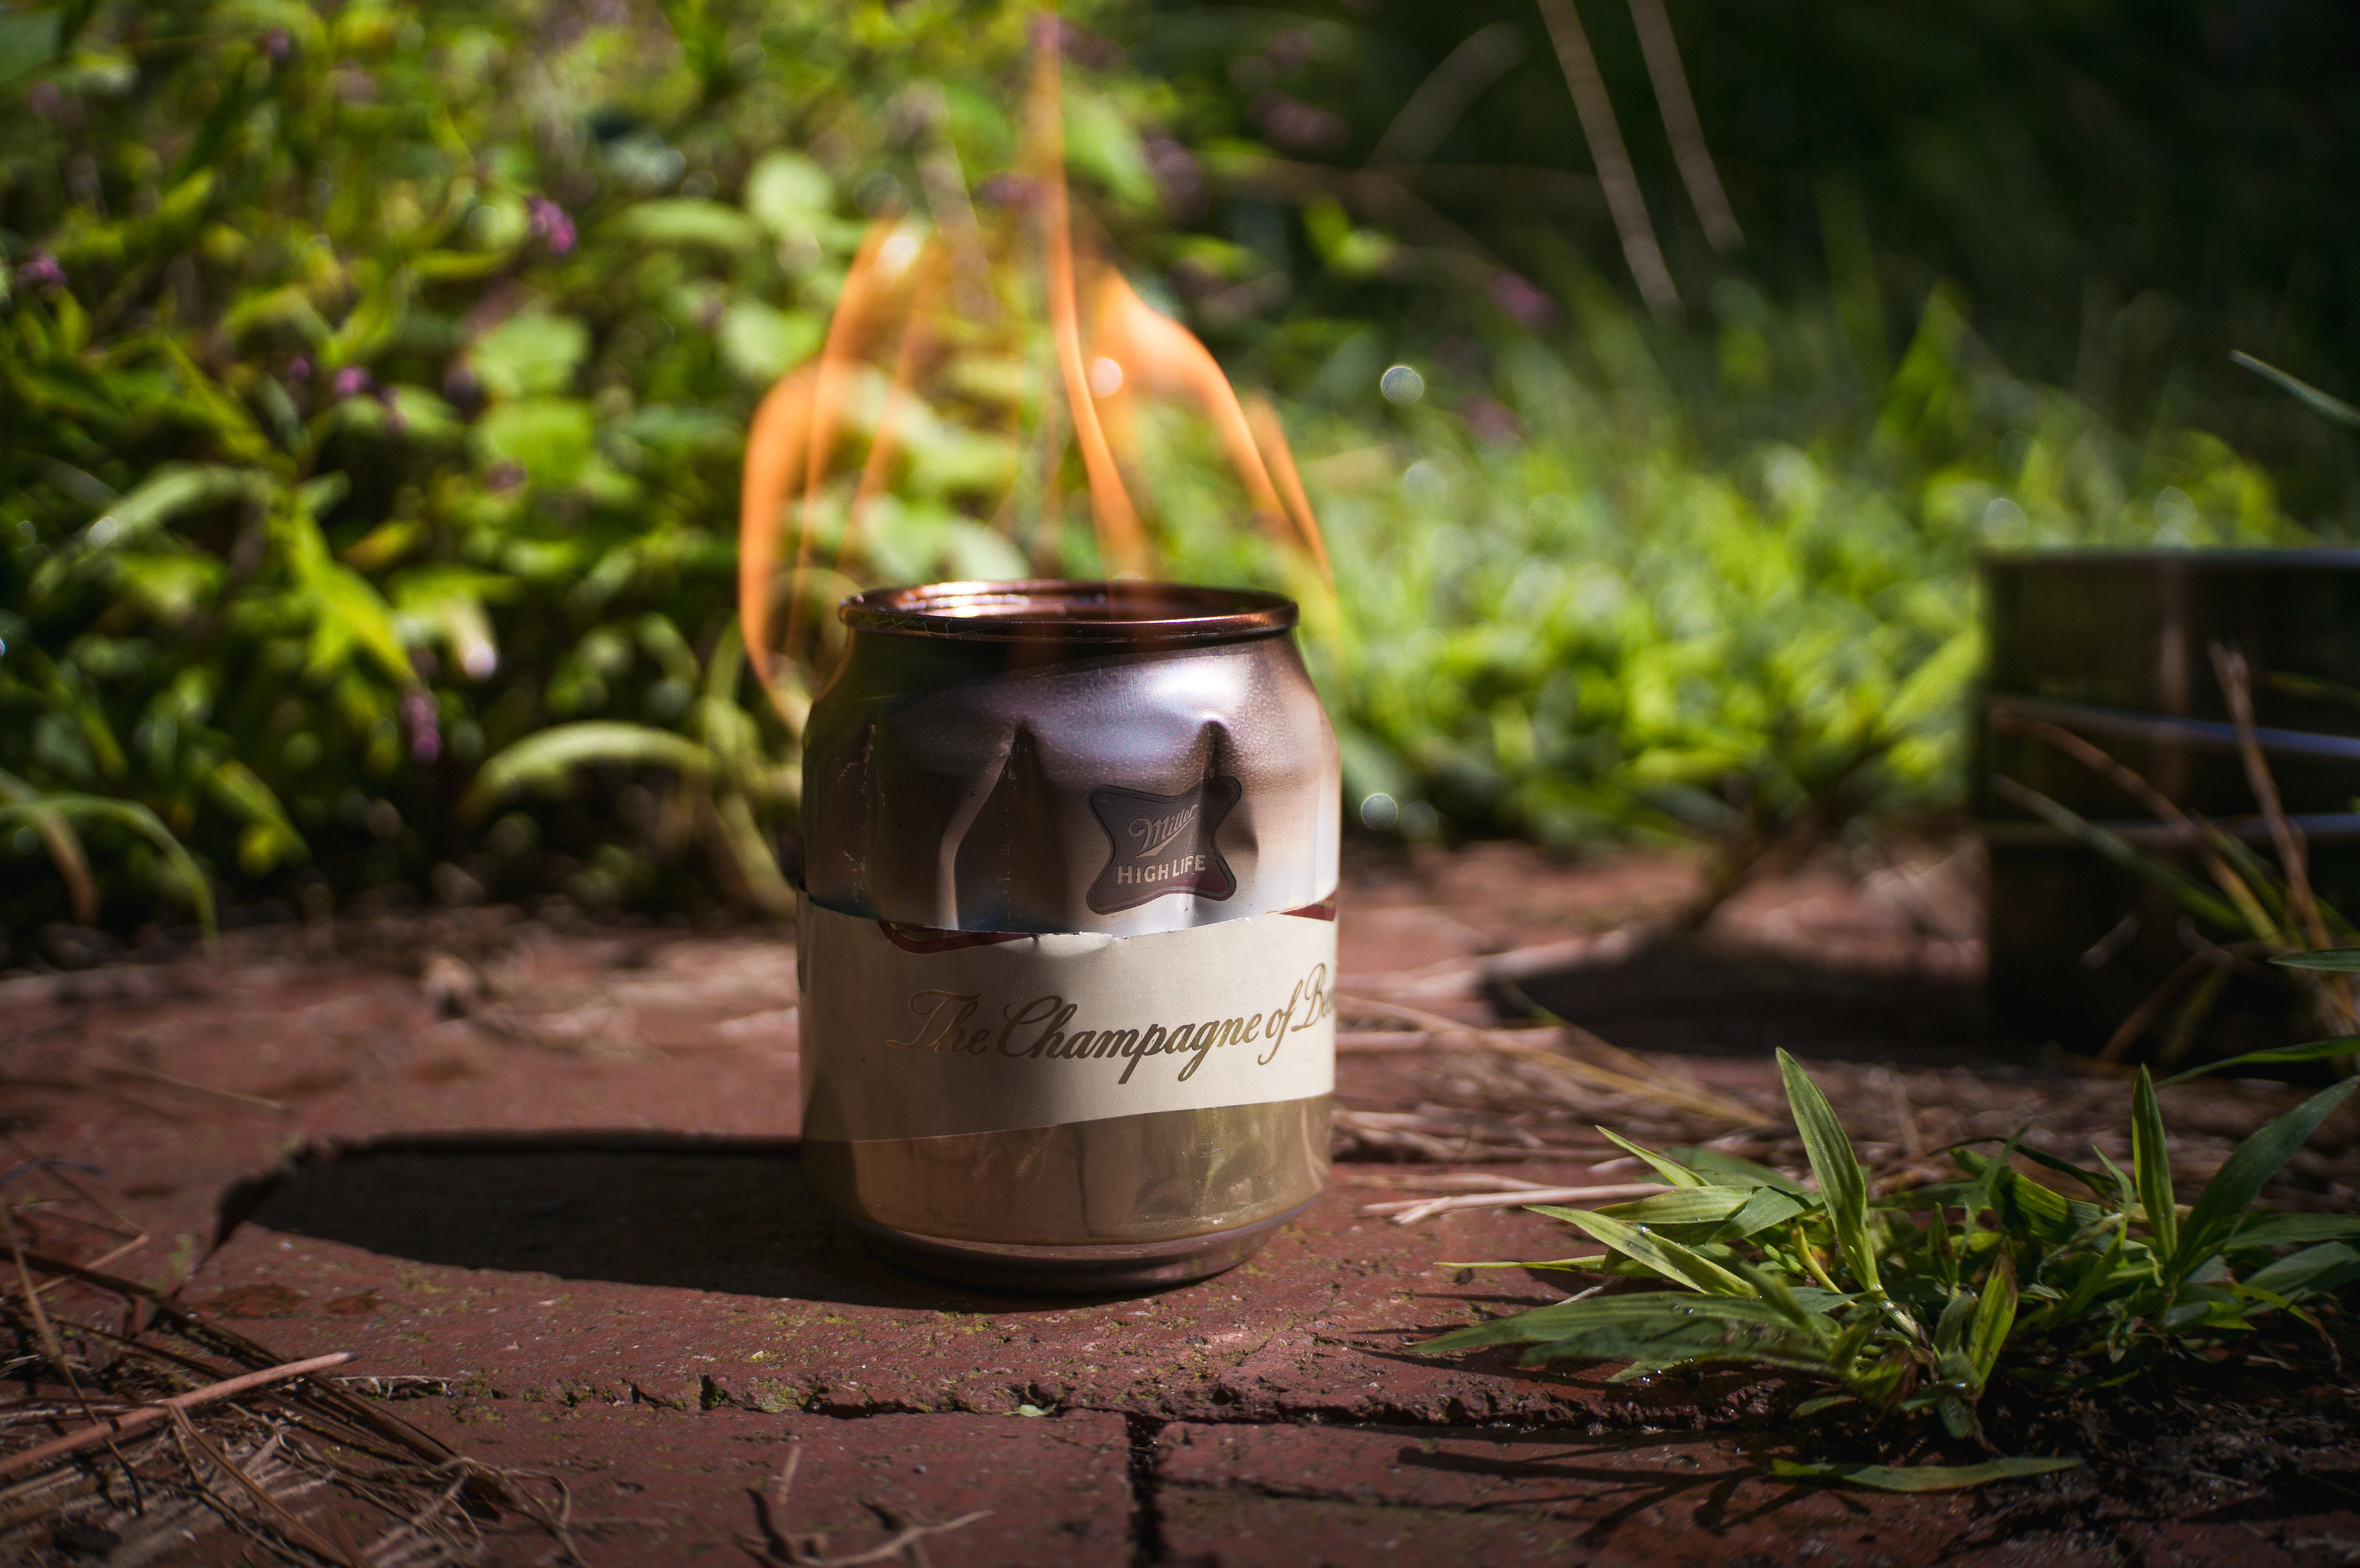 Using your camp stove